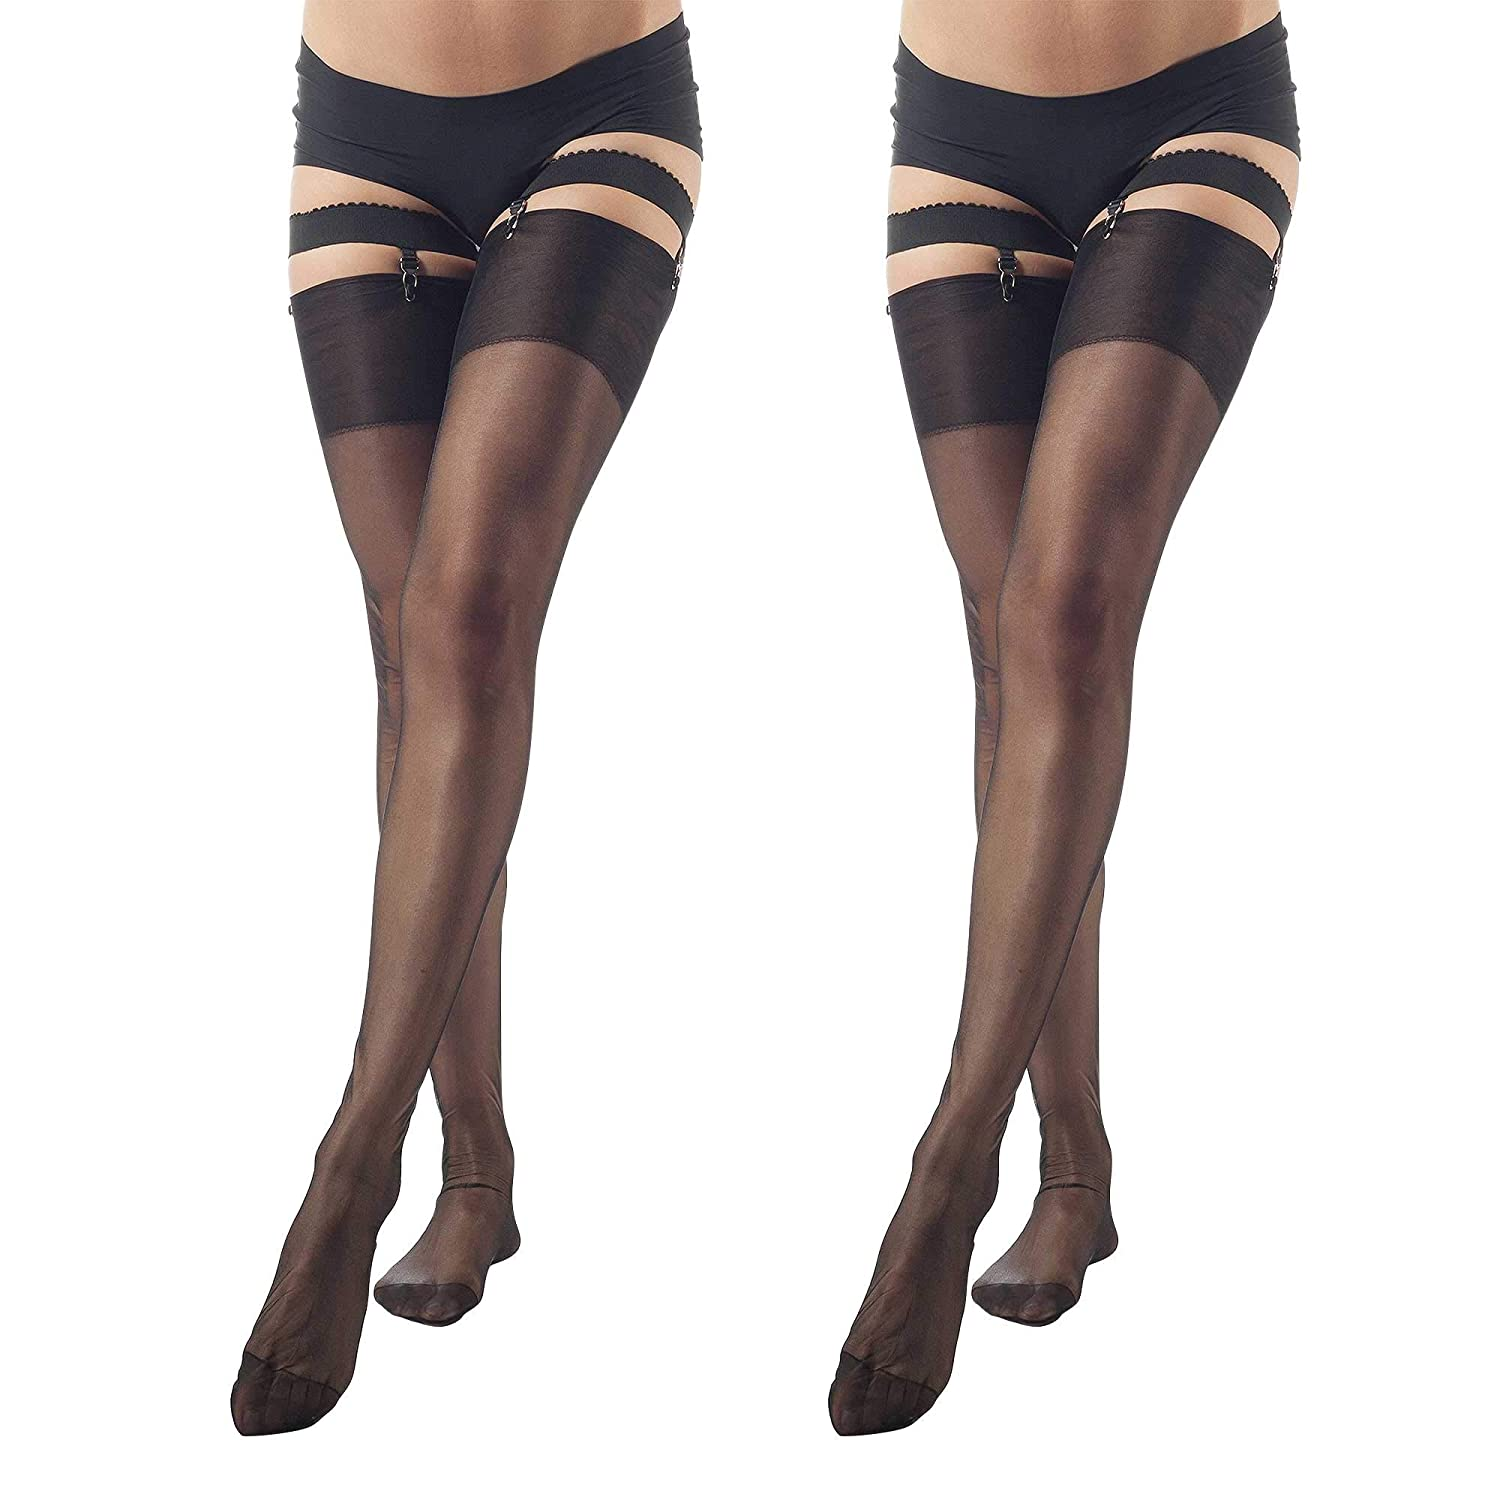 5192f6a080d Top 10 wholesale 10 Denier Stockings - Chinabrands.com